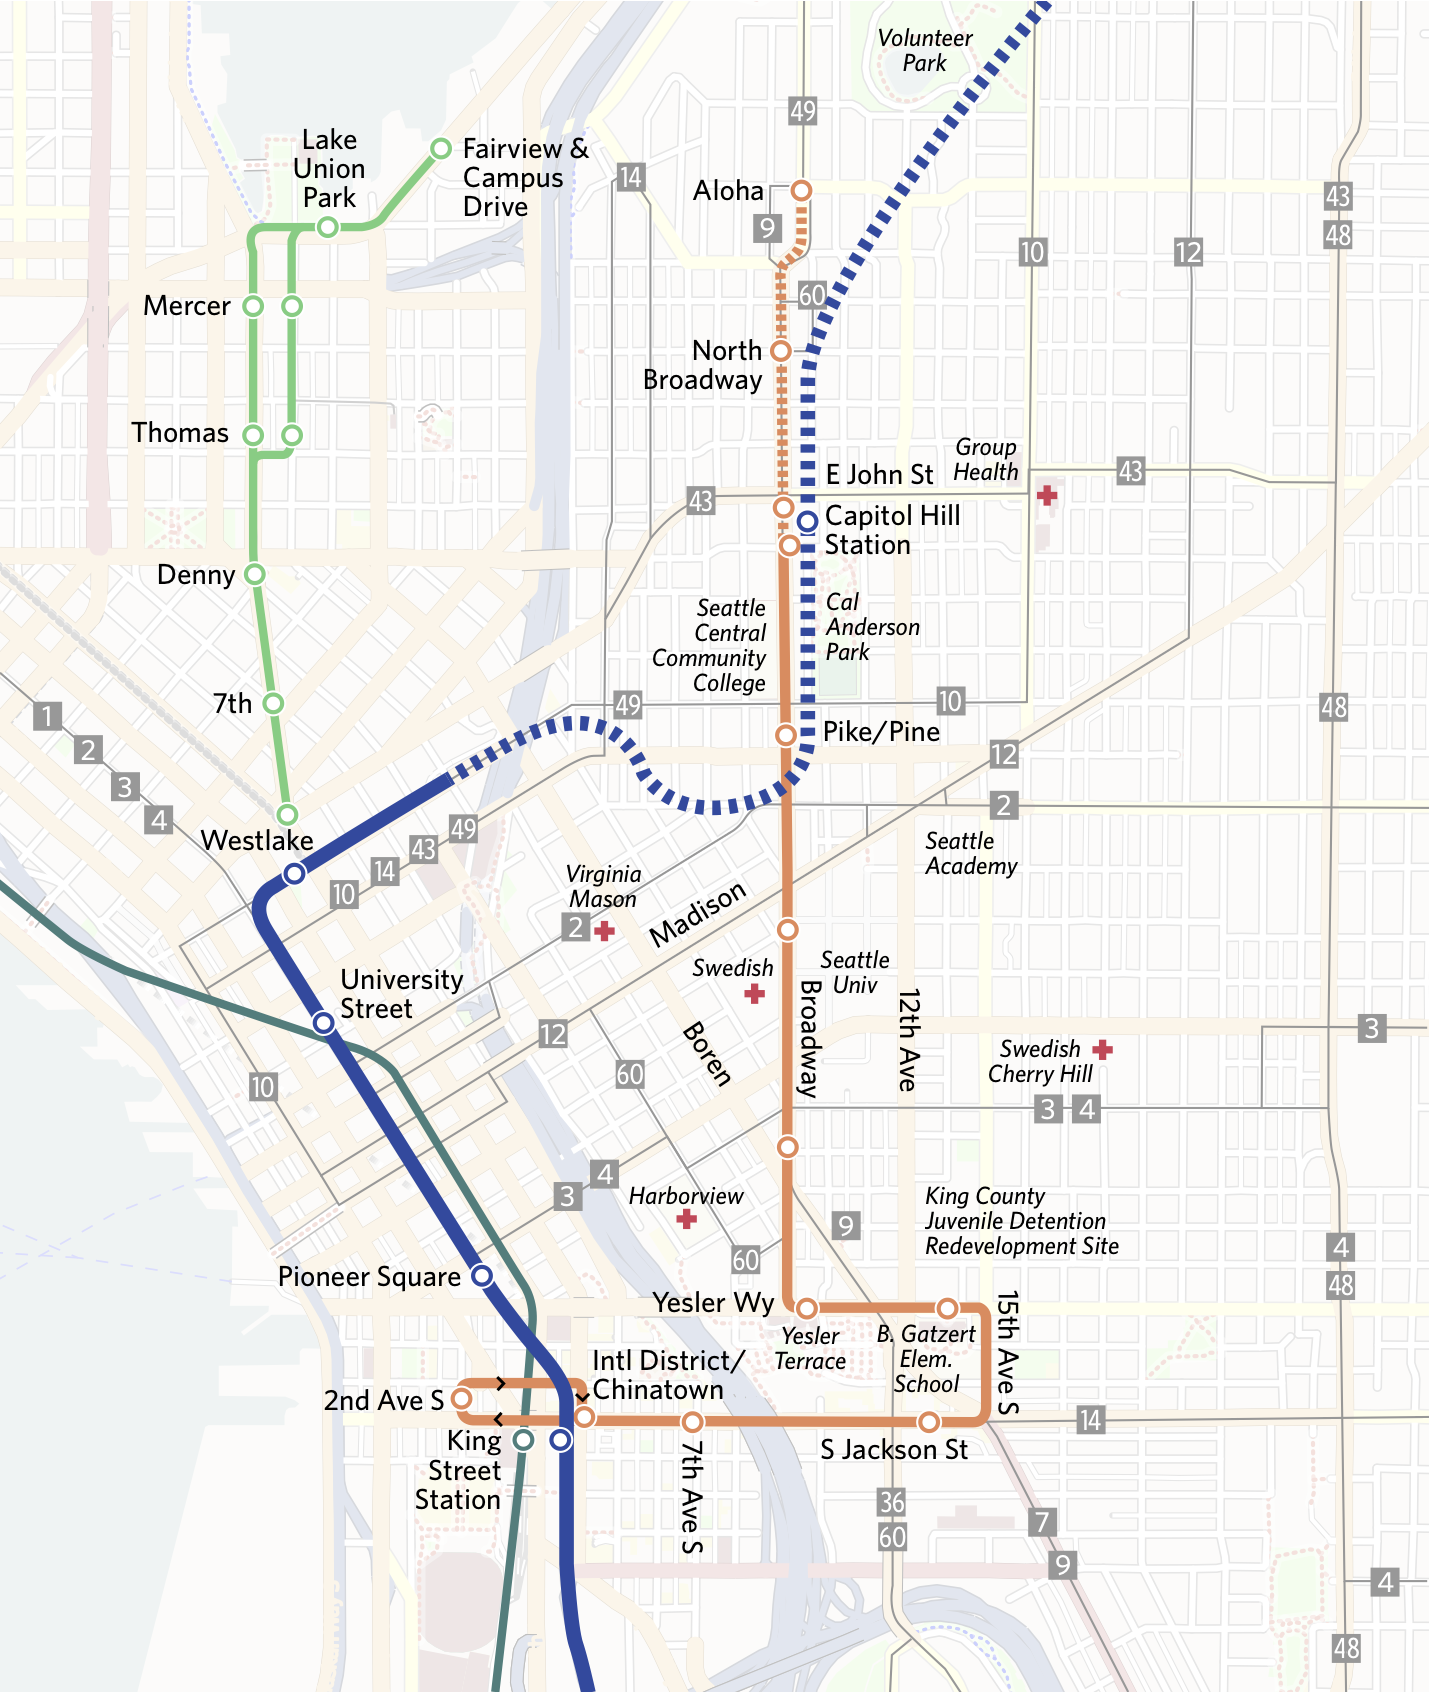 Washington Streetcar Systems By John Smatlak